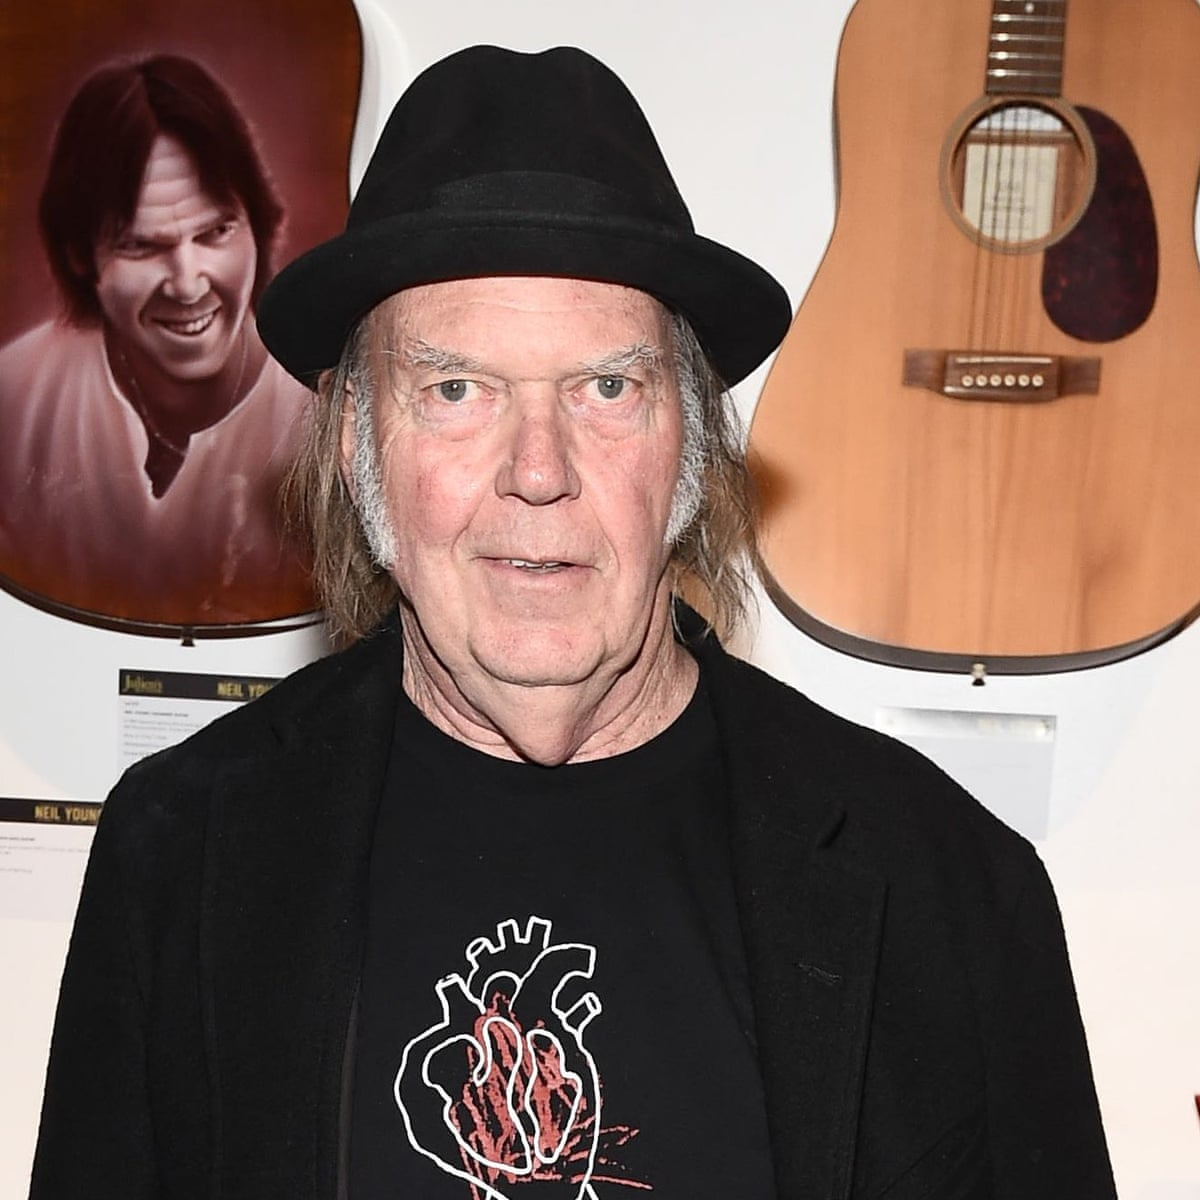 The 74-year old son of father (?) and mother(?) Neil Young in 2020 photo. Neil Young earned a  million dollar salary - leaving the net worth at  million in 2020